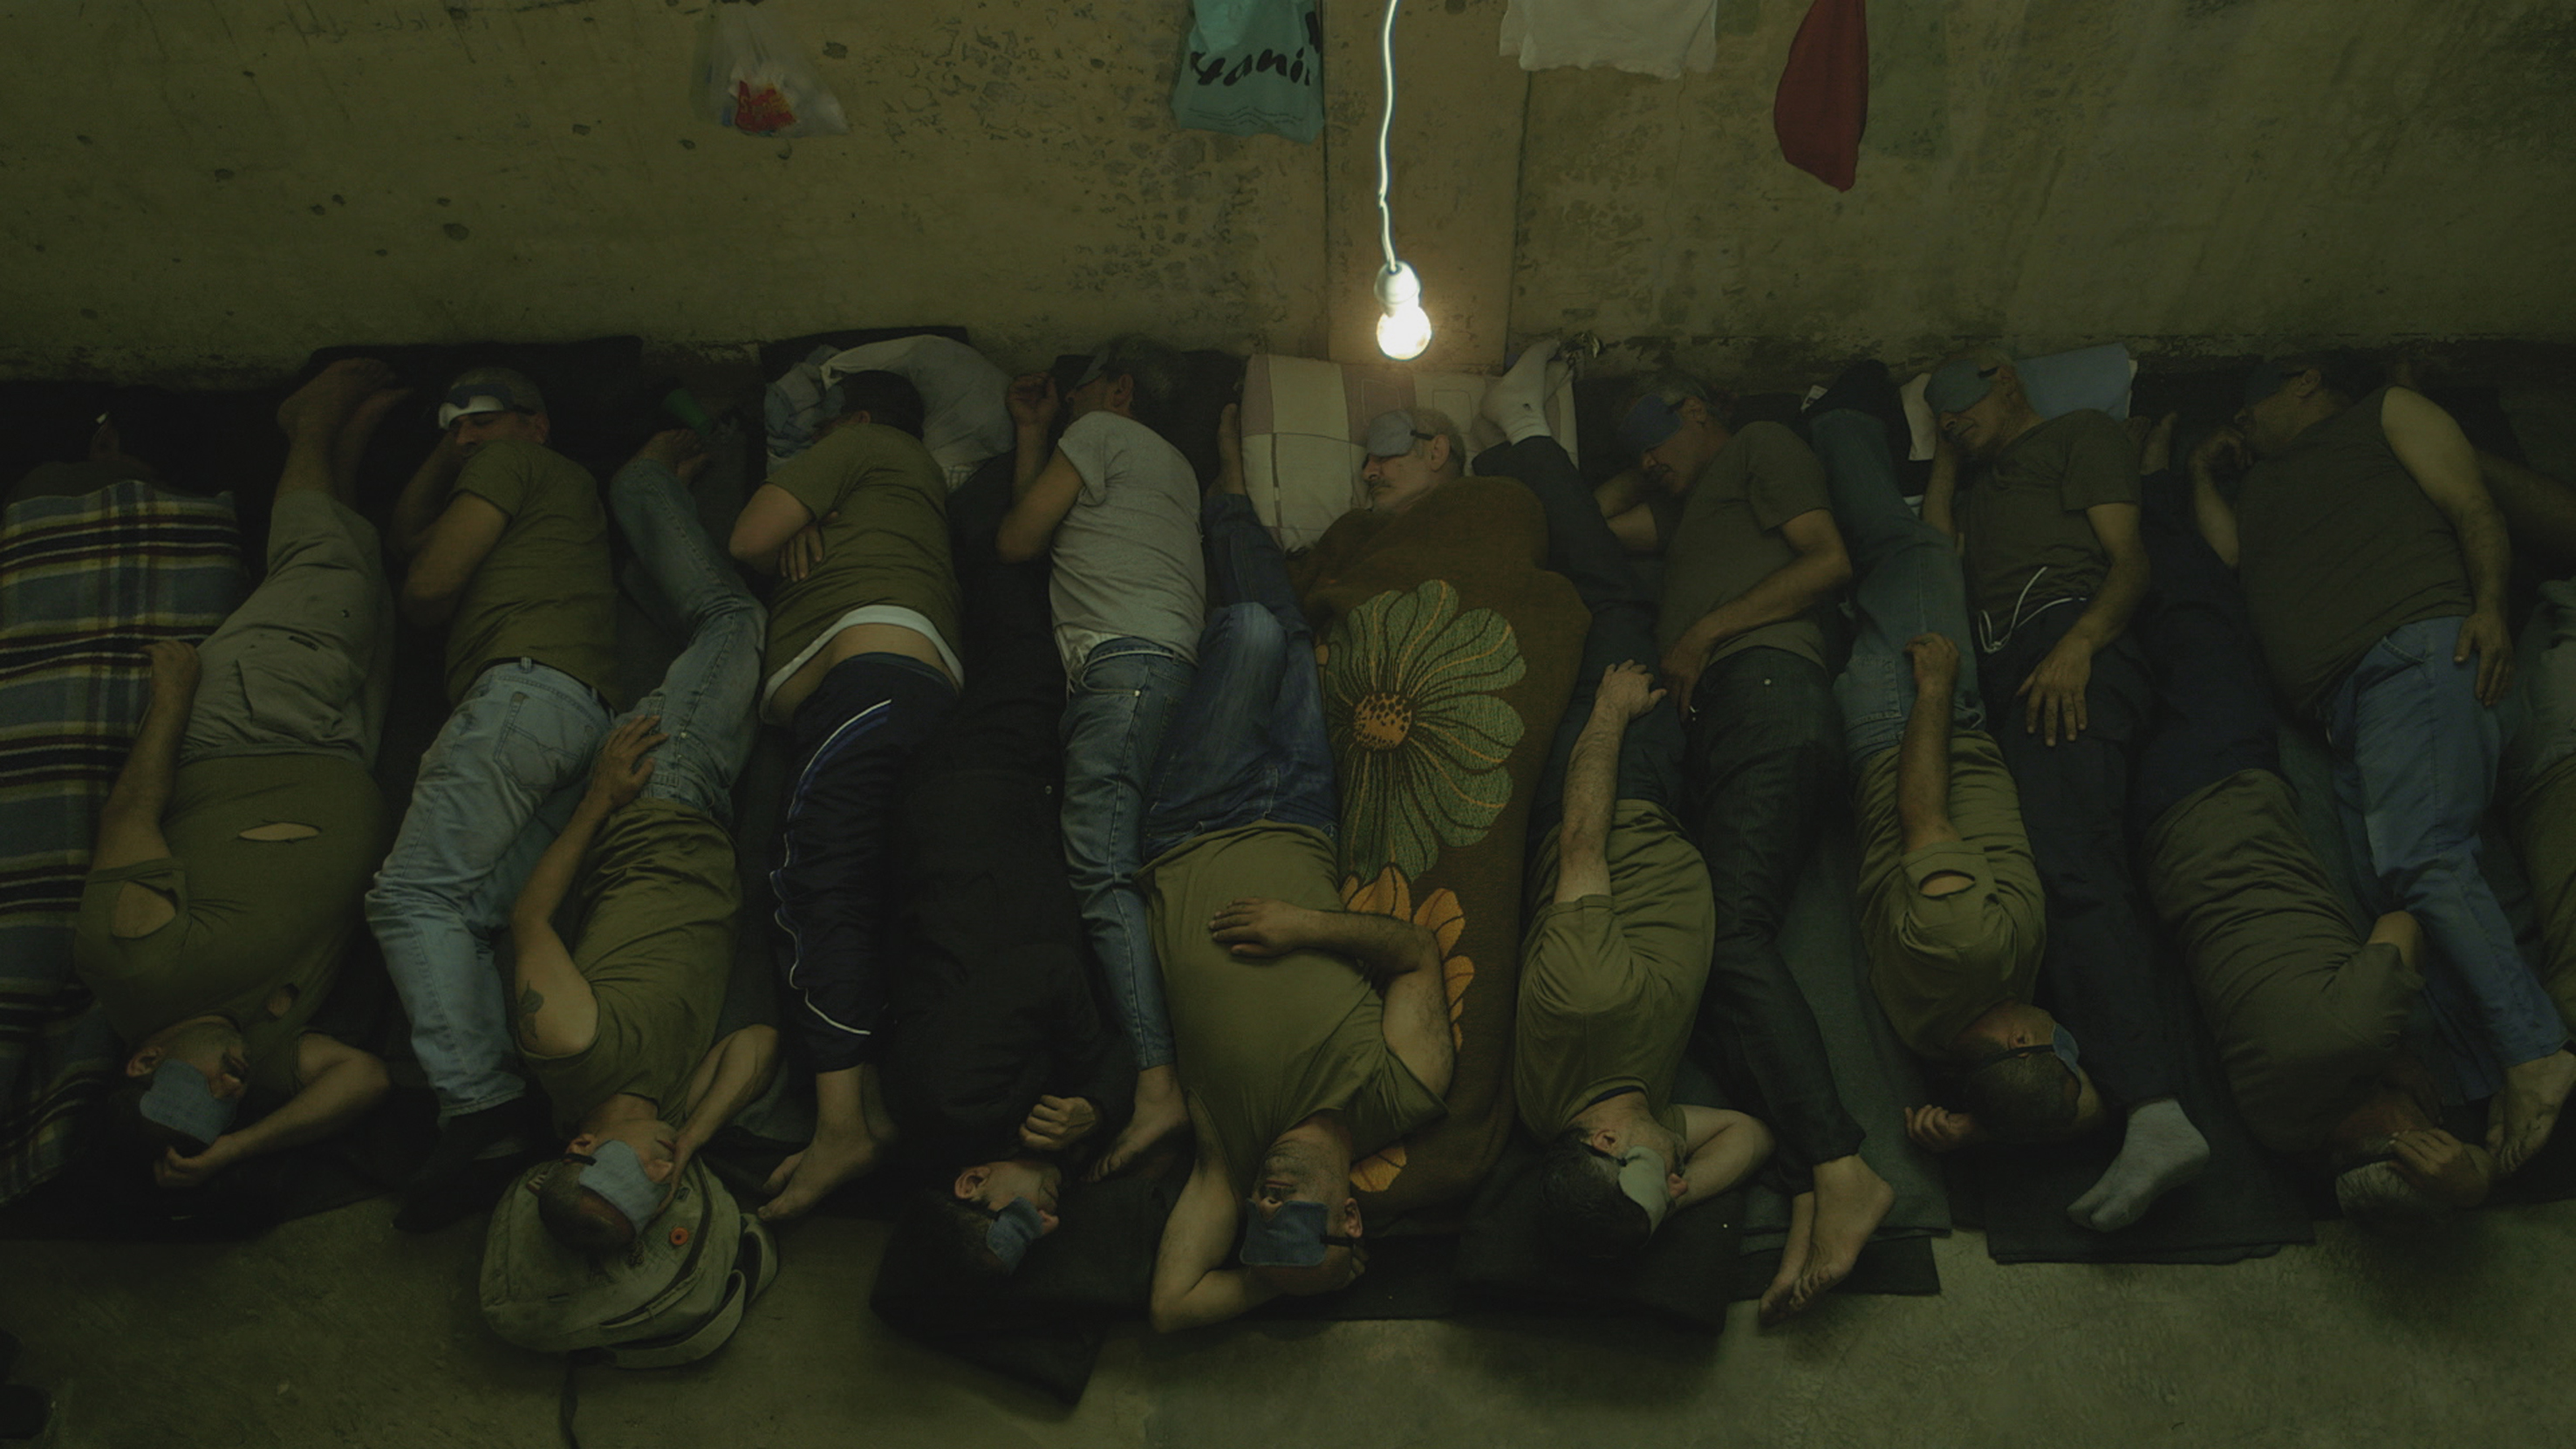 Prisoners sleeping in a collective cell